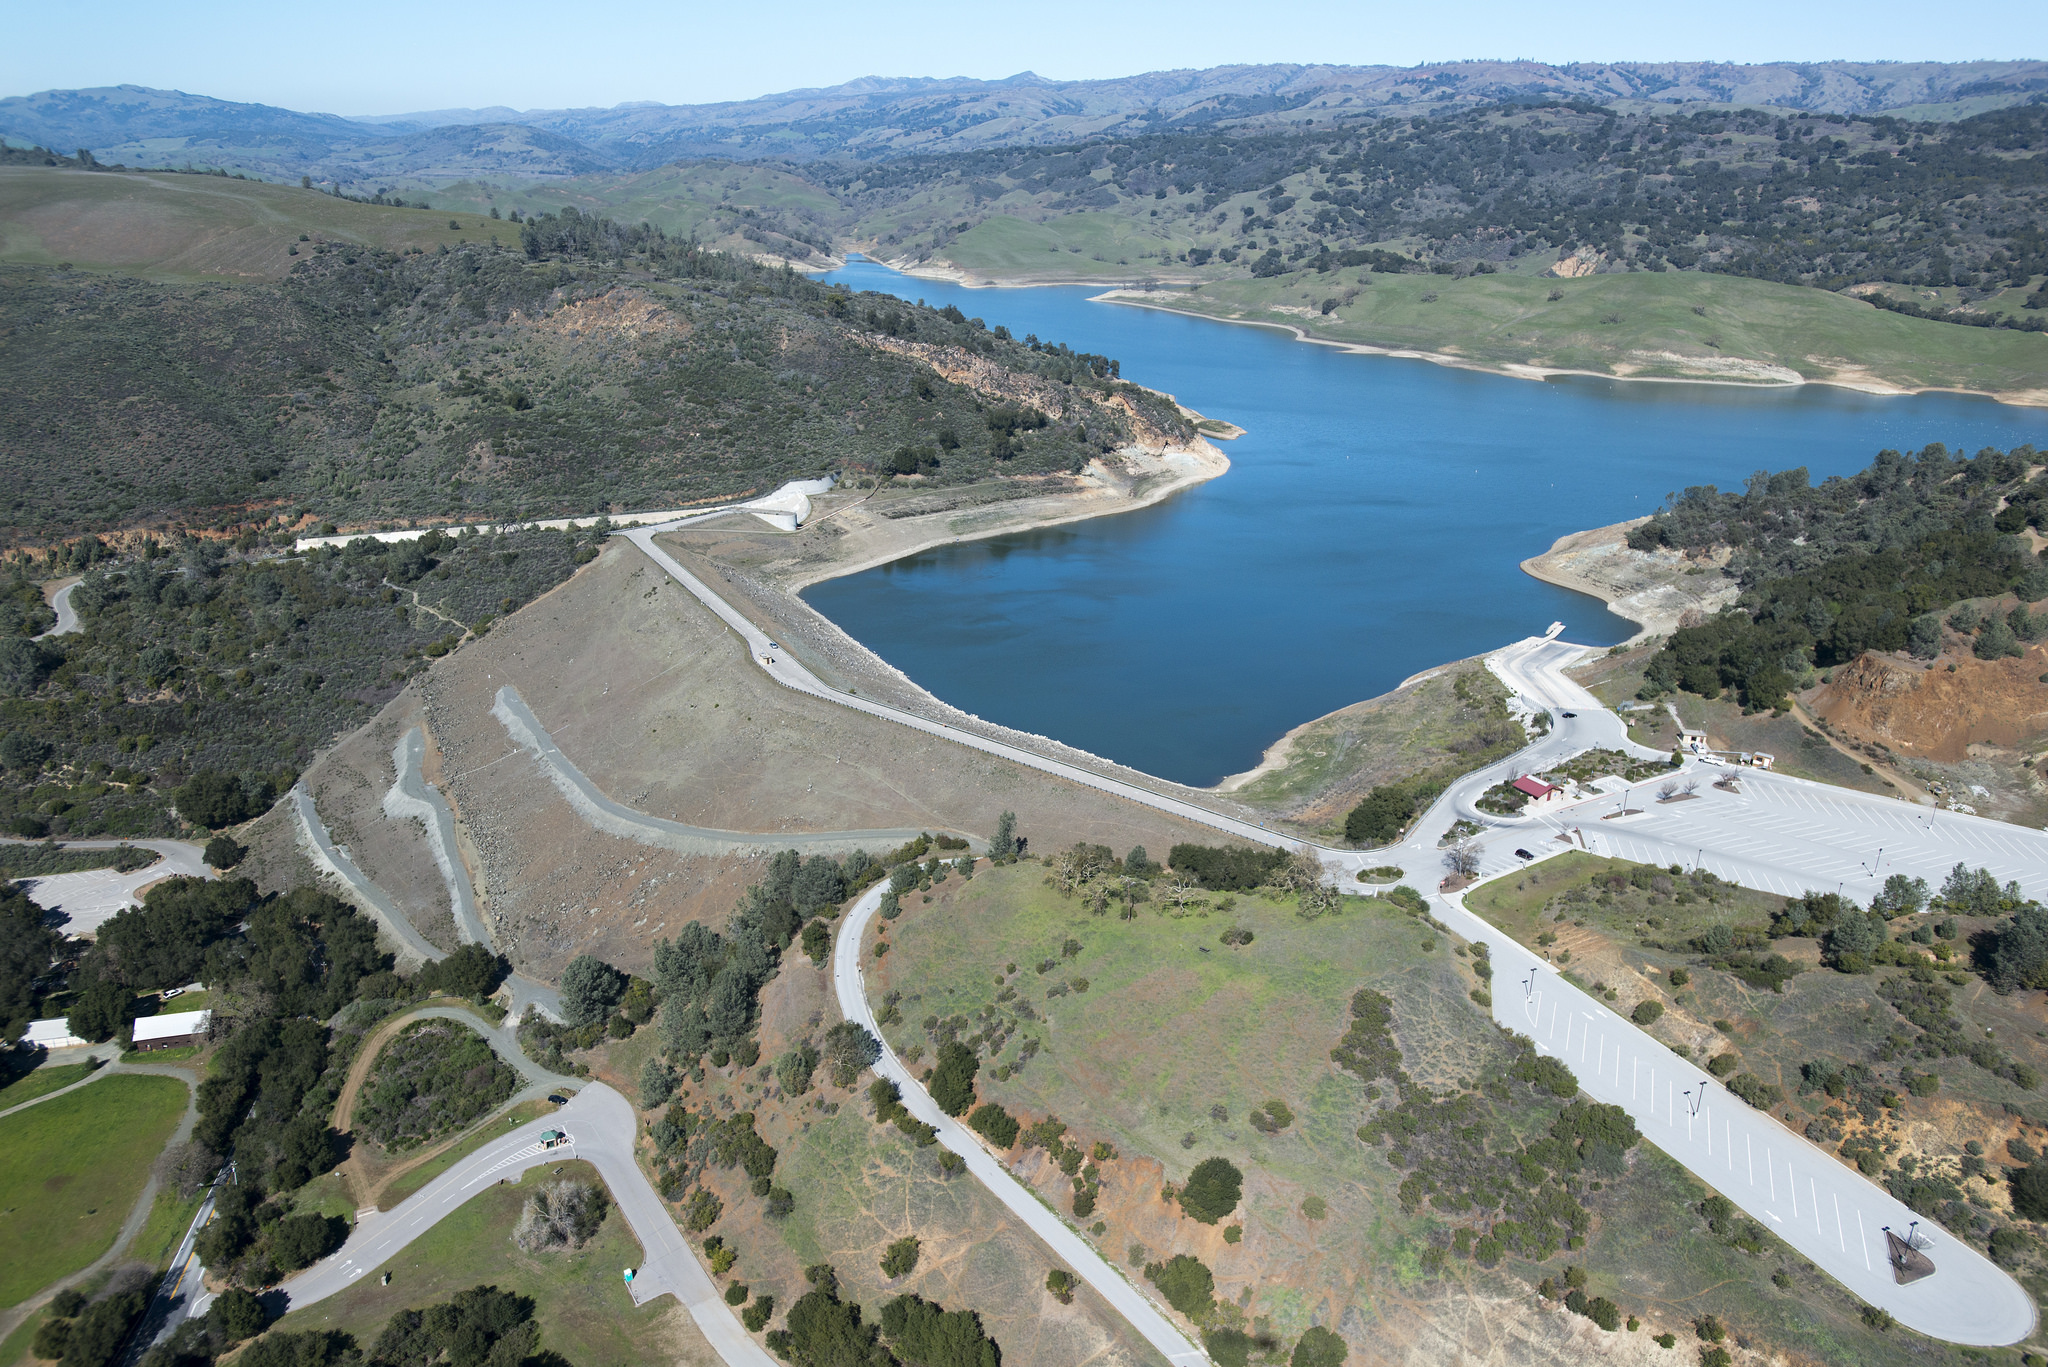 Anderson dam and reservoir